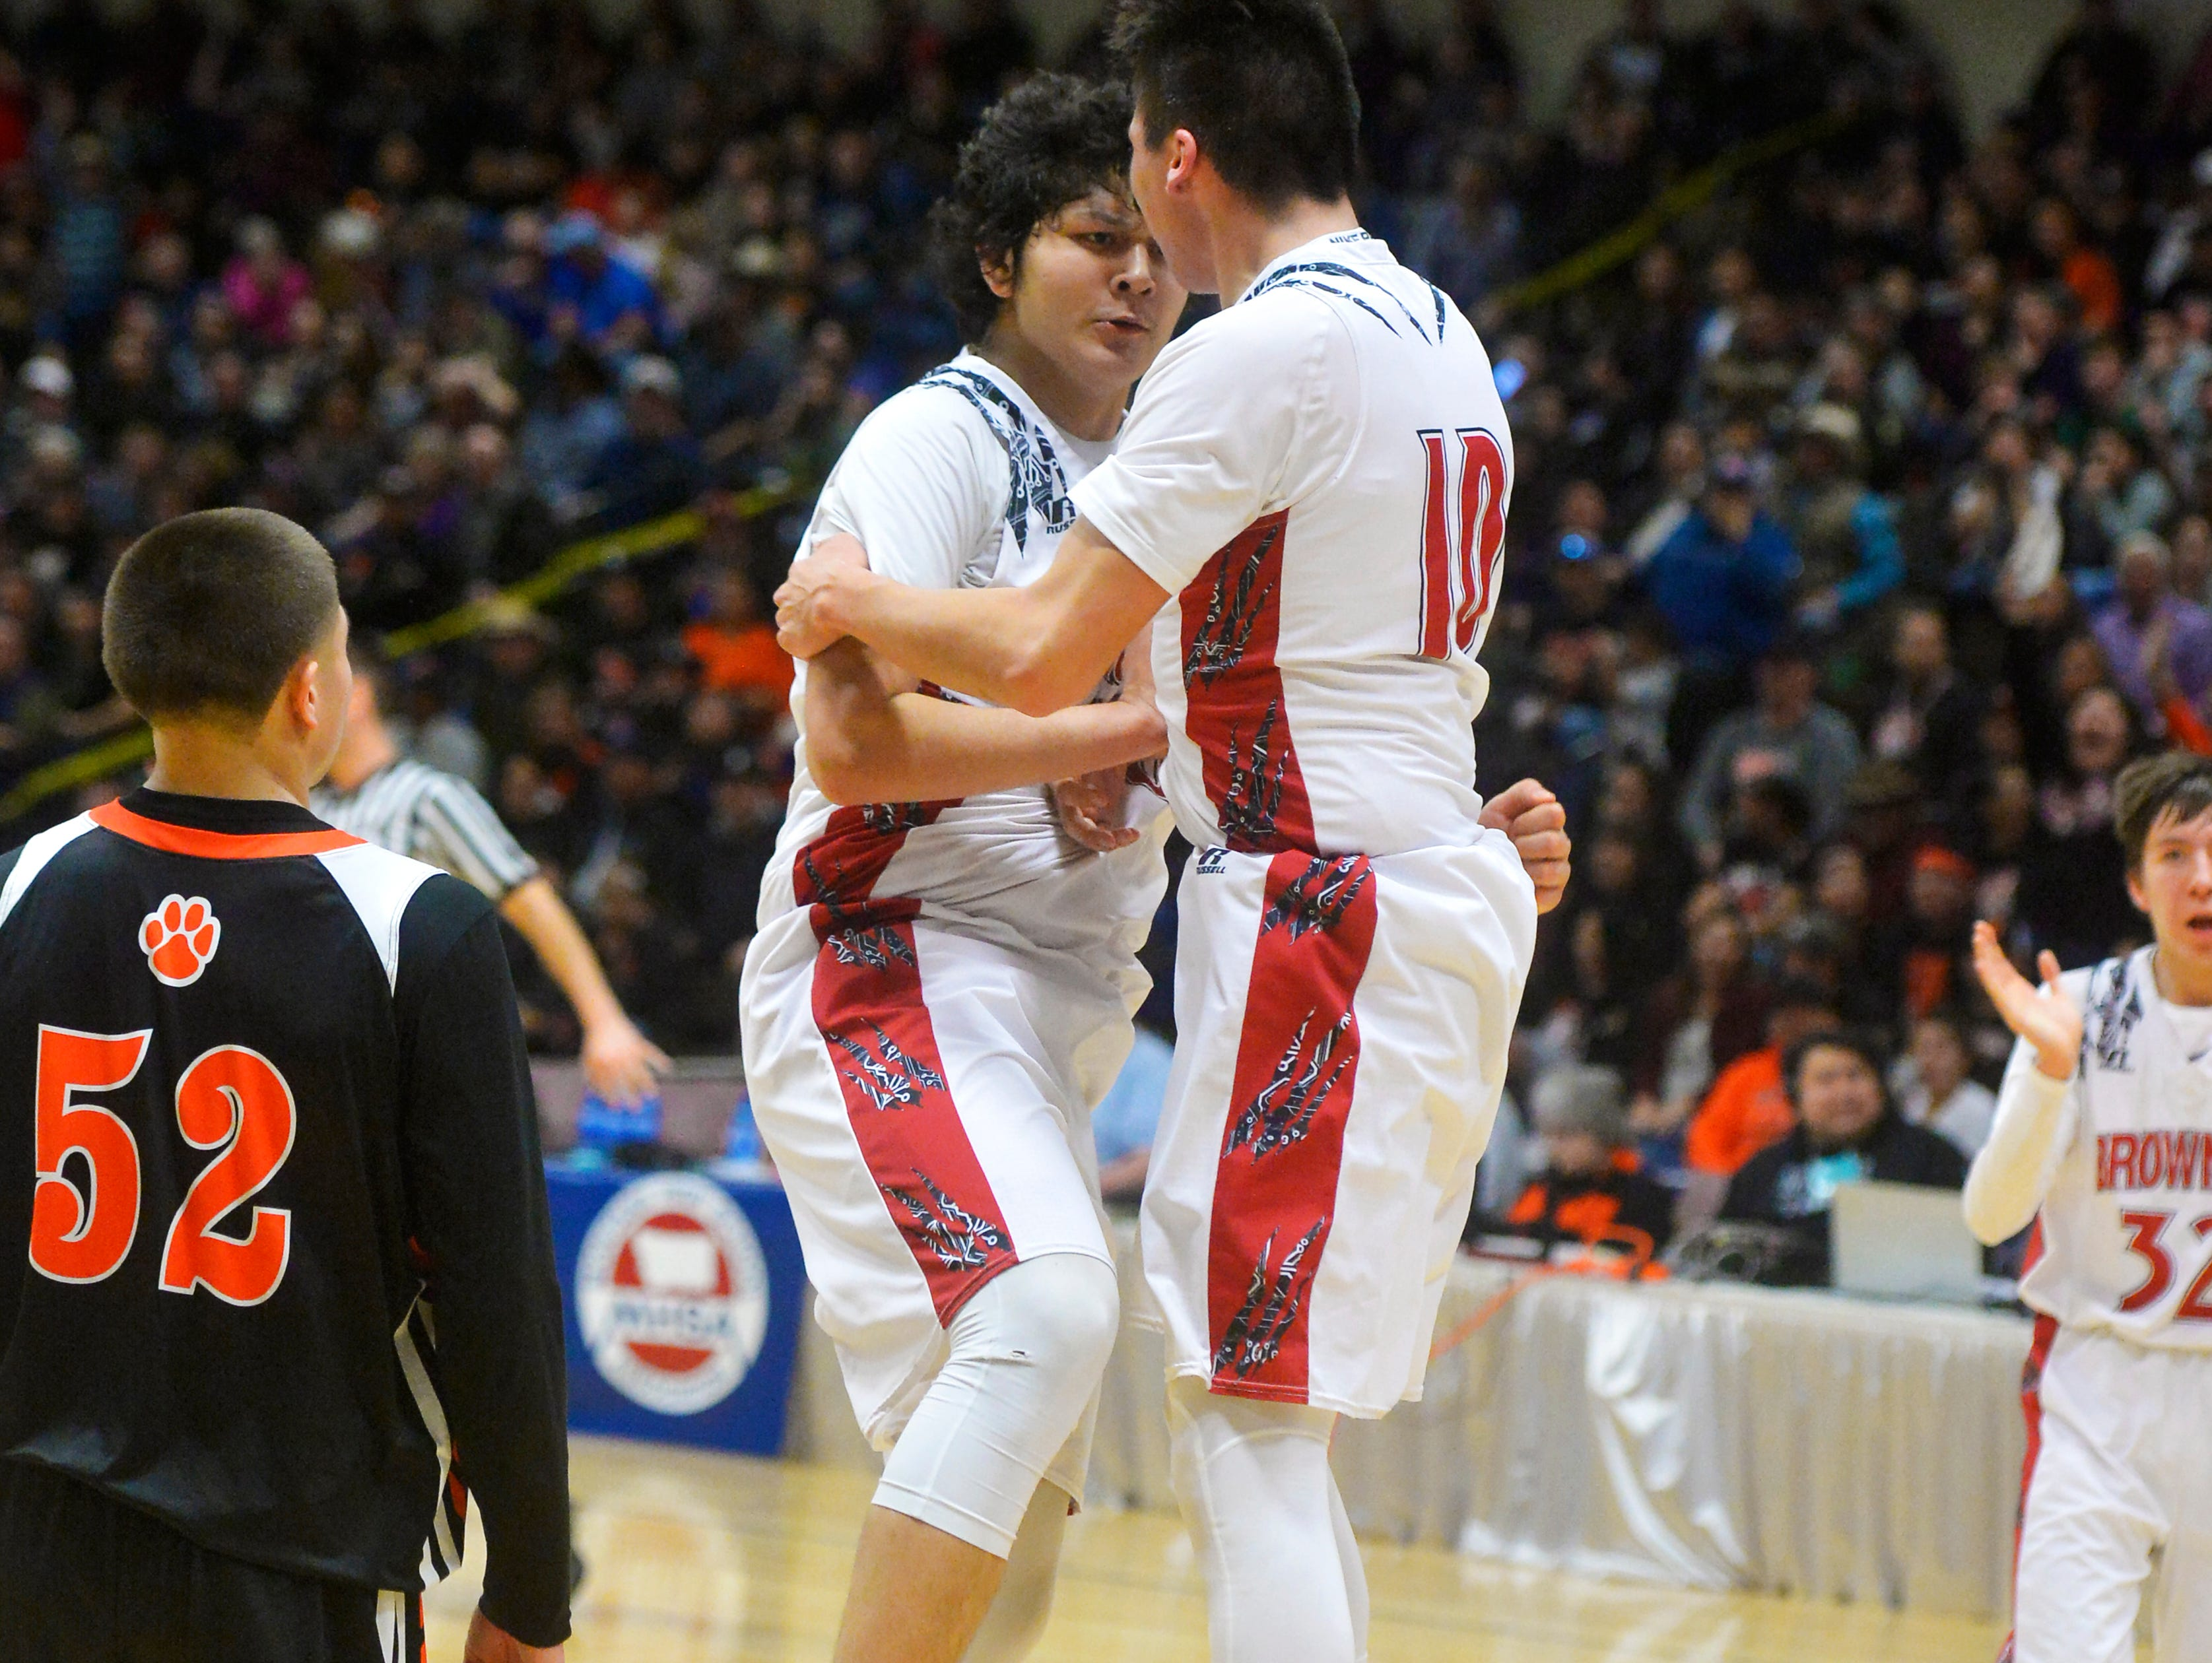 Browning's Tyree Whitcomb, left, and Riley Spoonhunter celebrate a buzzer beating three pointer to end the first half of Thursday's game against Hardin during the Class A State Basketball Tournament in the Four Seasons Arena.